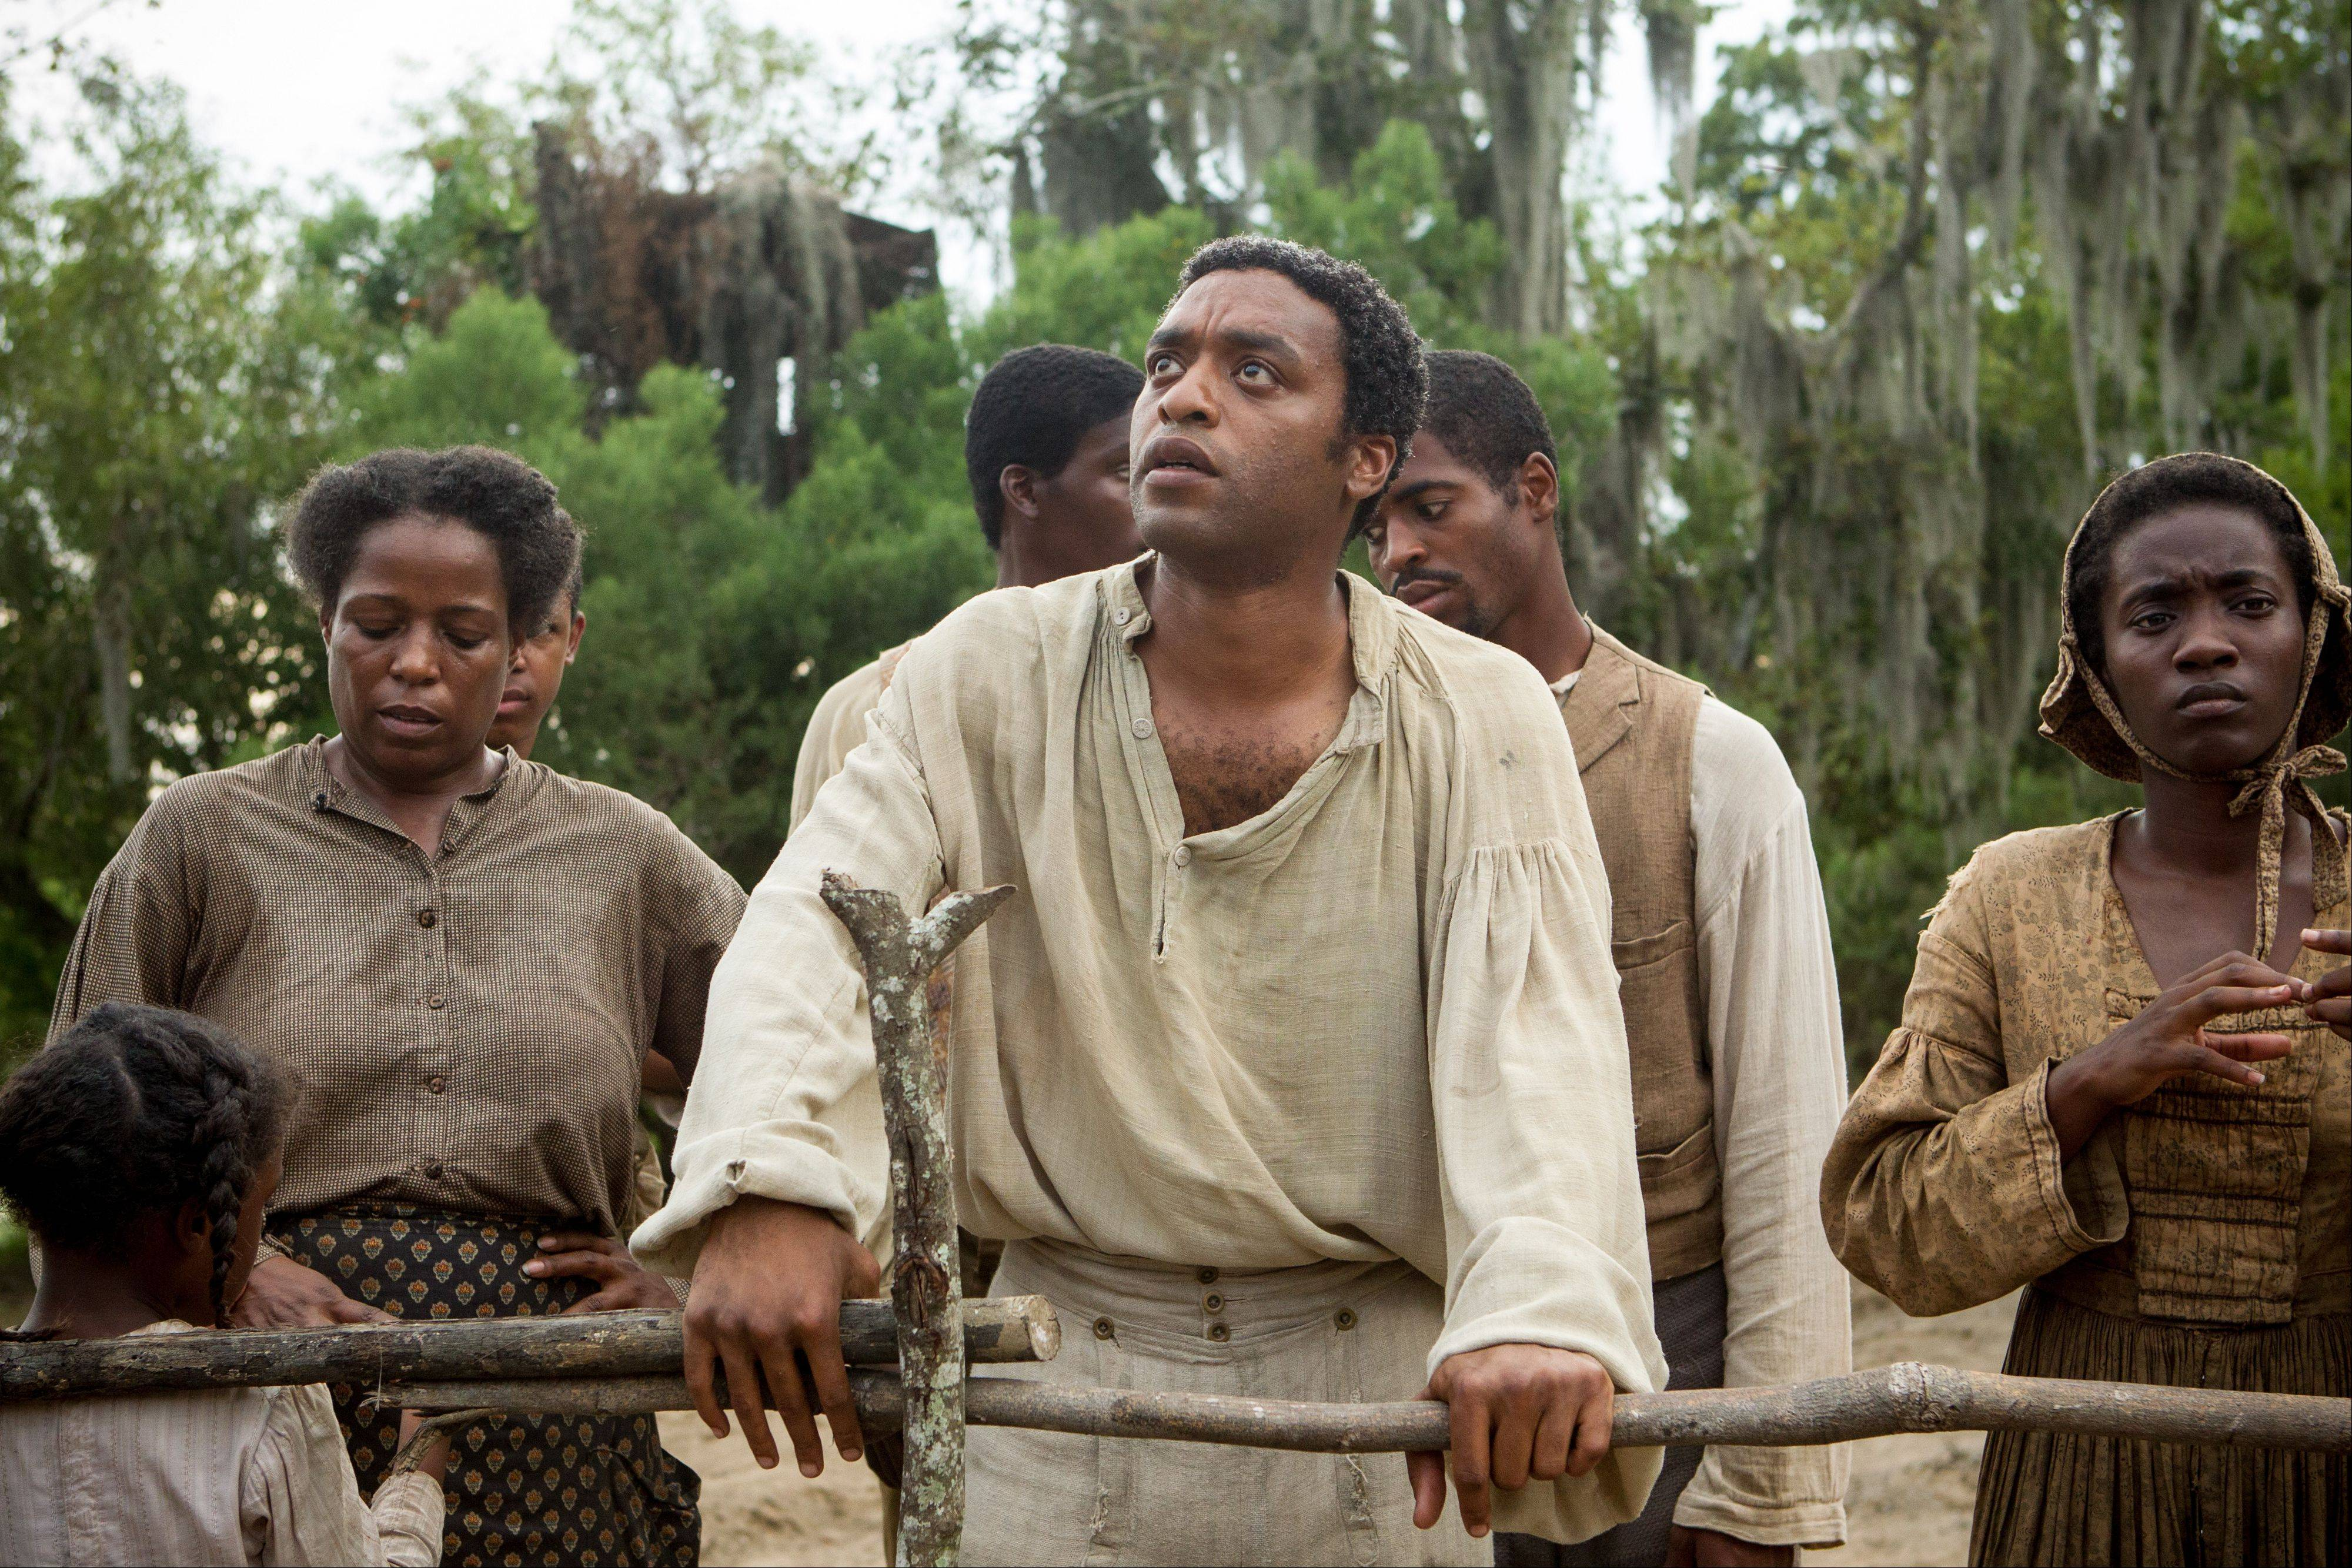 Chiwetel Ejiofor, center, stars as a kidnapped free black man in